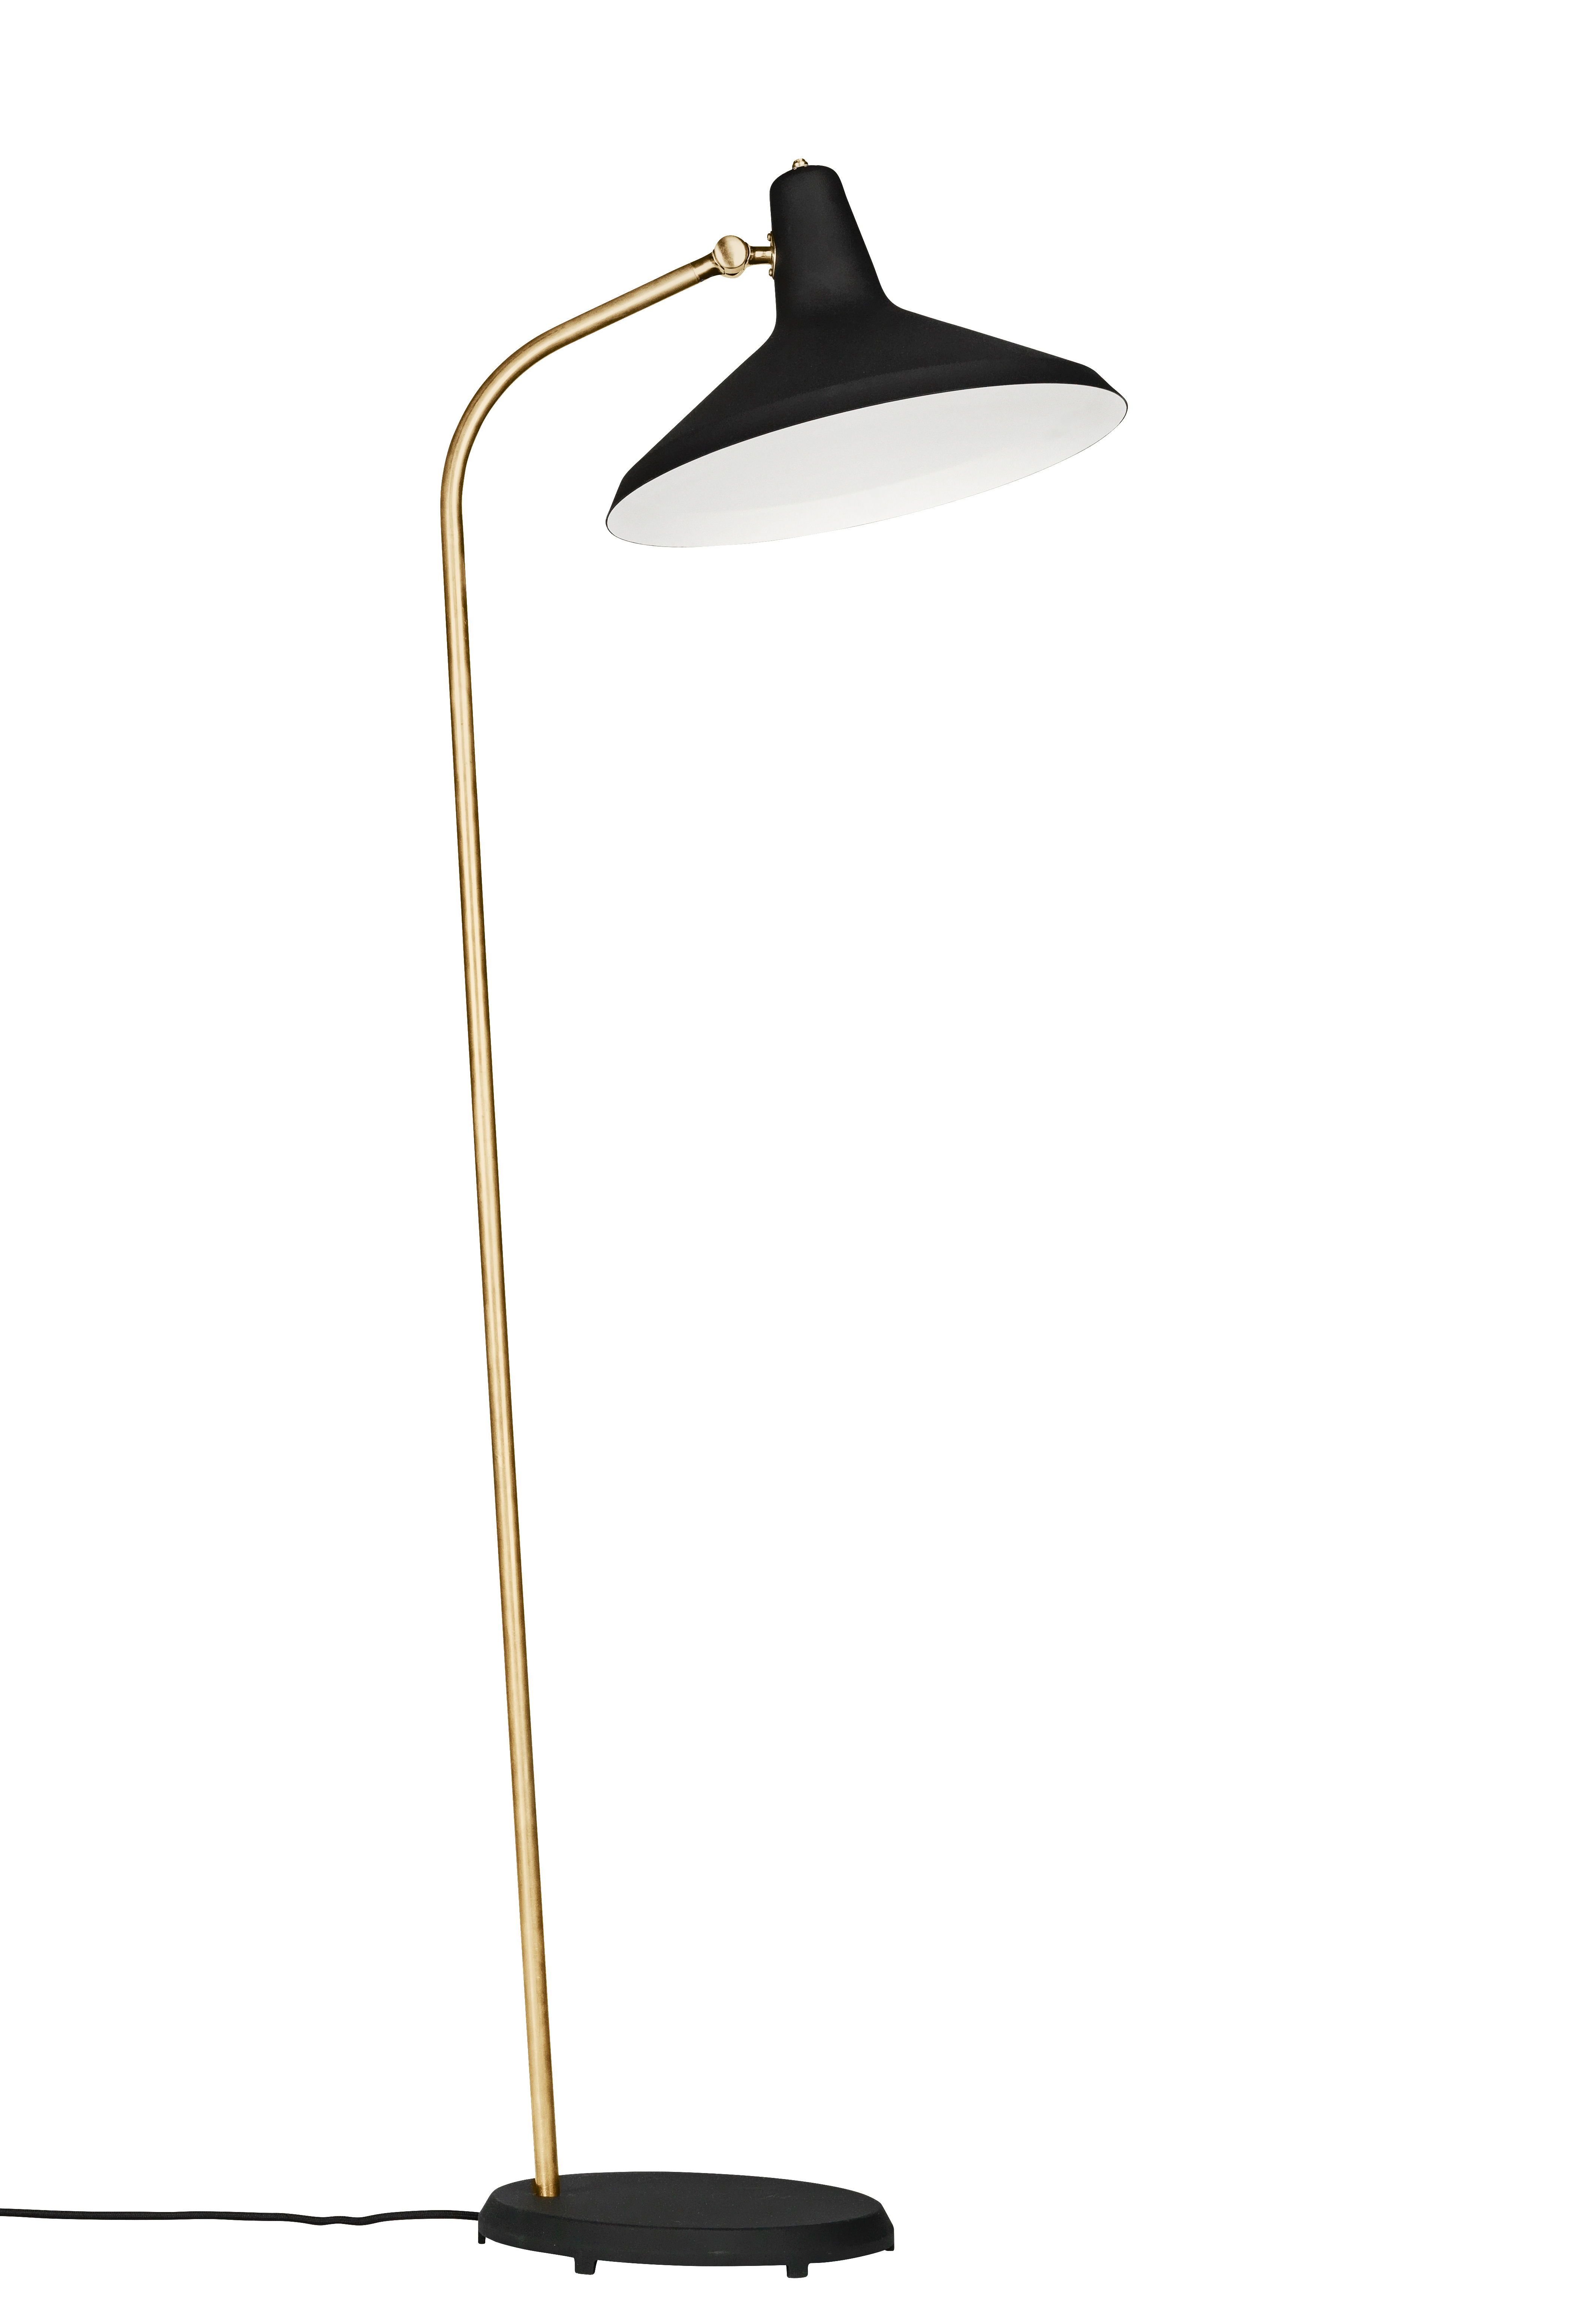 Lighting - Floor lamps - G10 Floor lamp - /Grossman - 1950 Reissue by Gubi - Black & Brass - Brass, Fabric, Glass, Metal